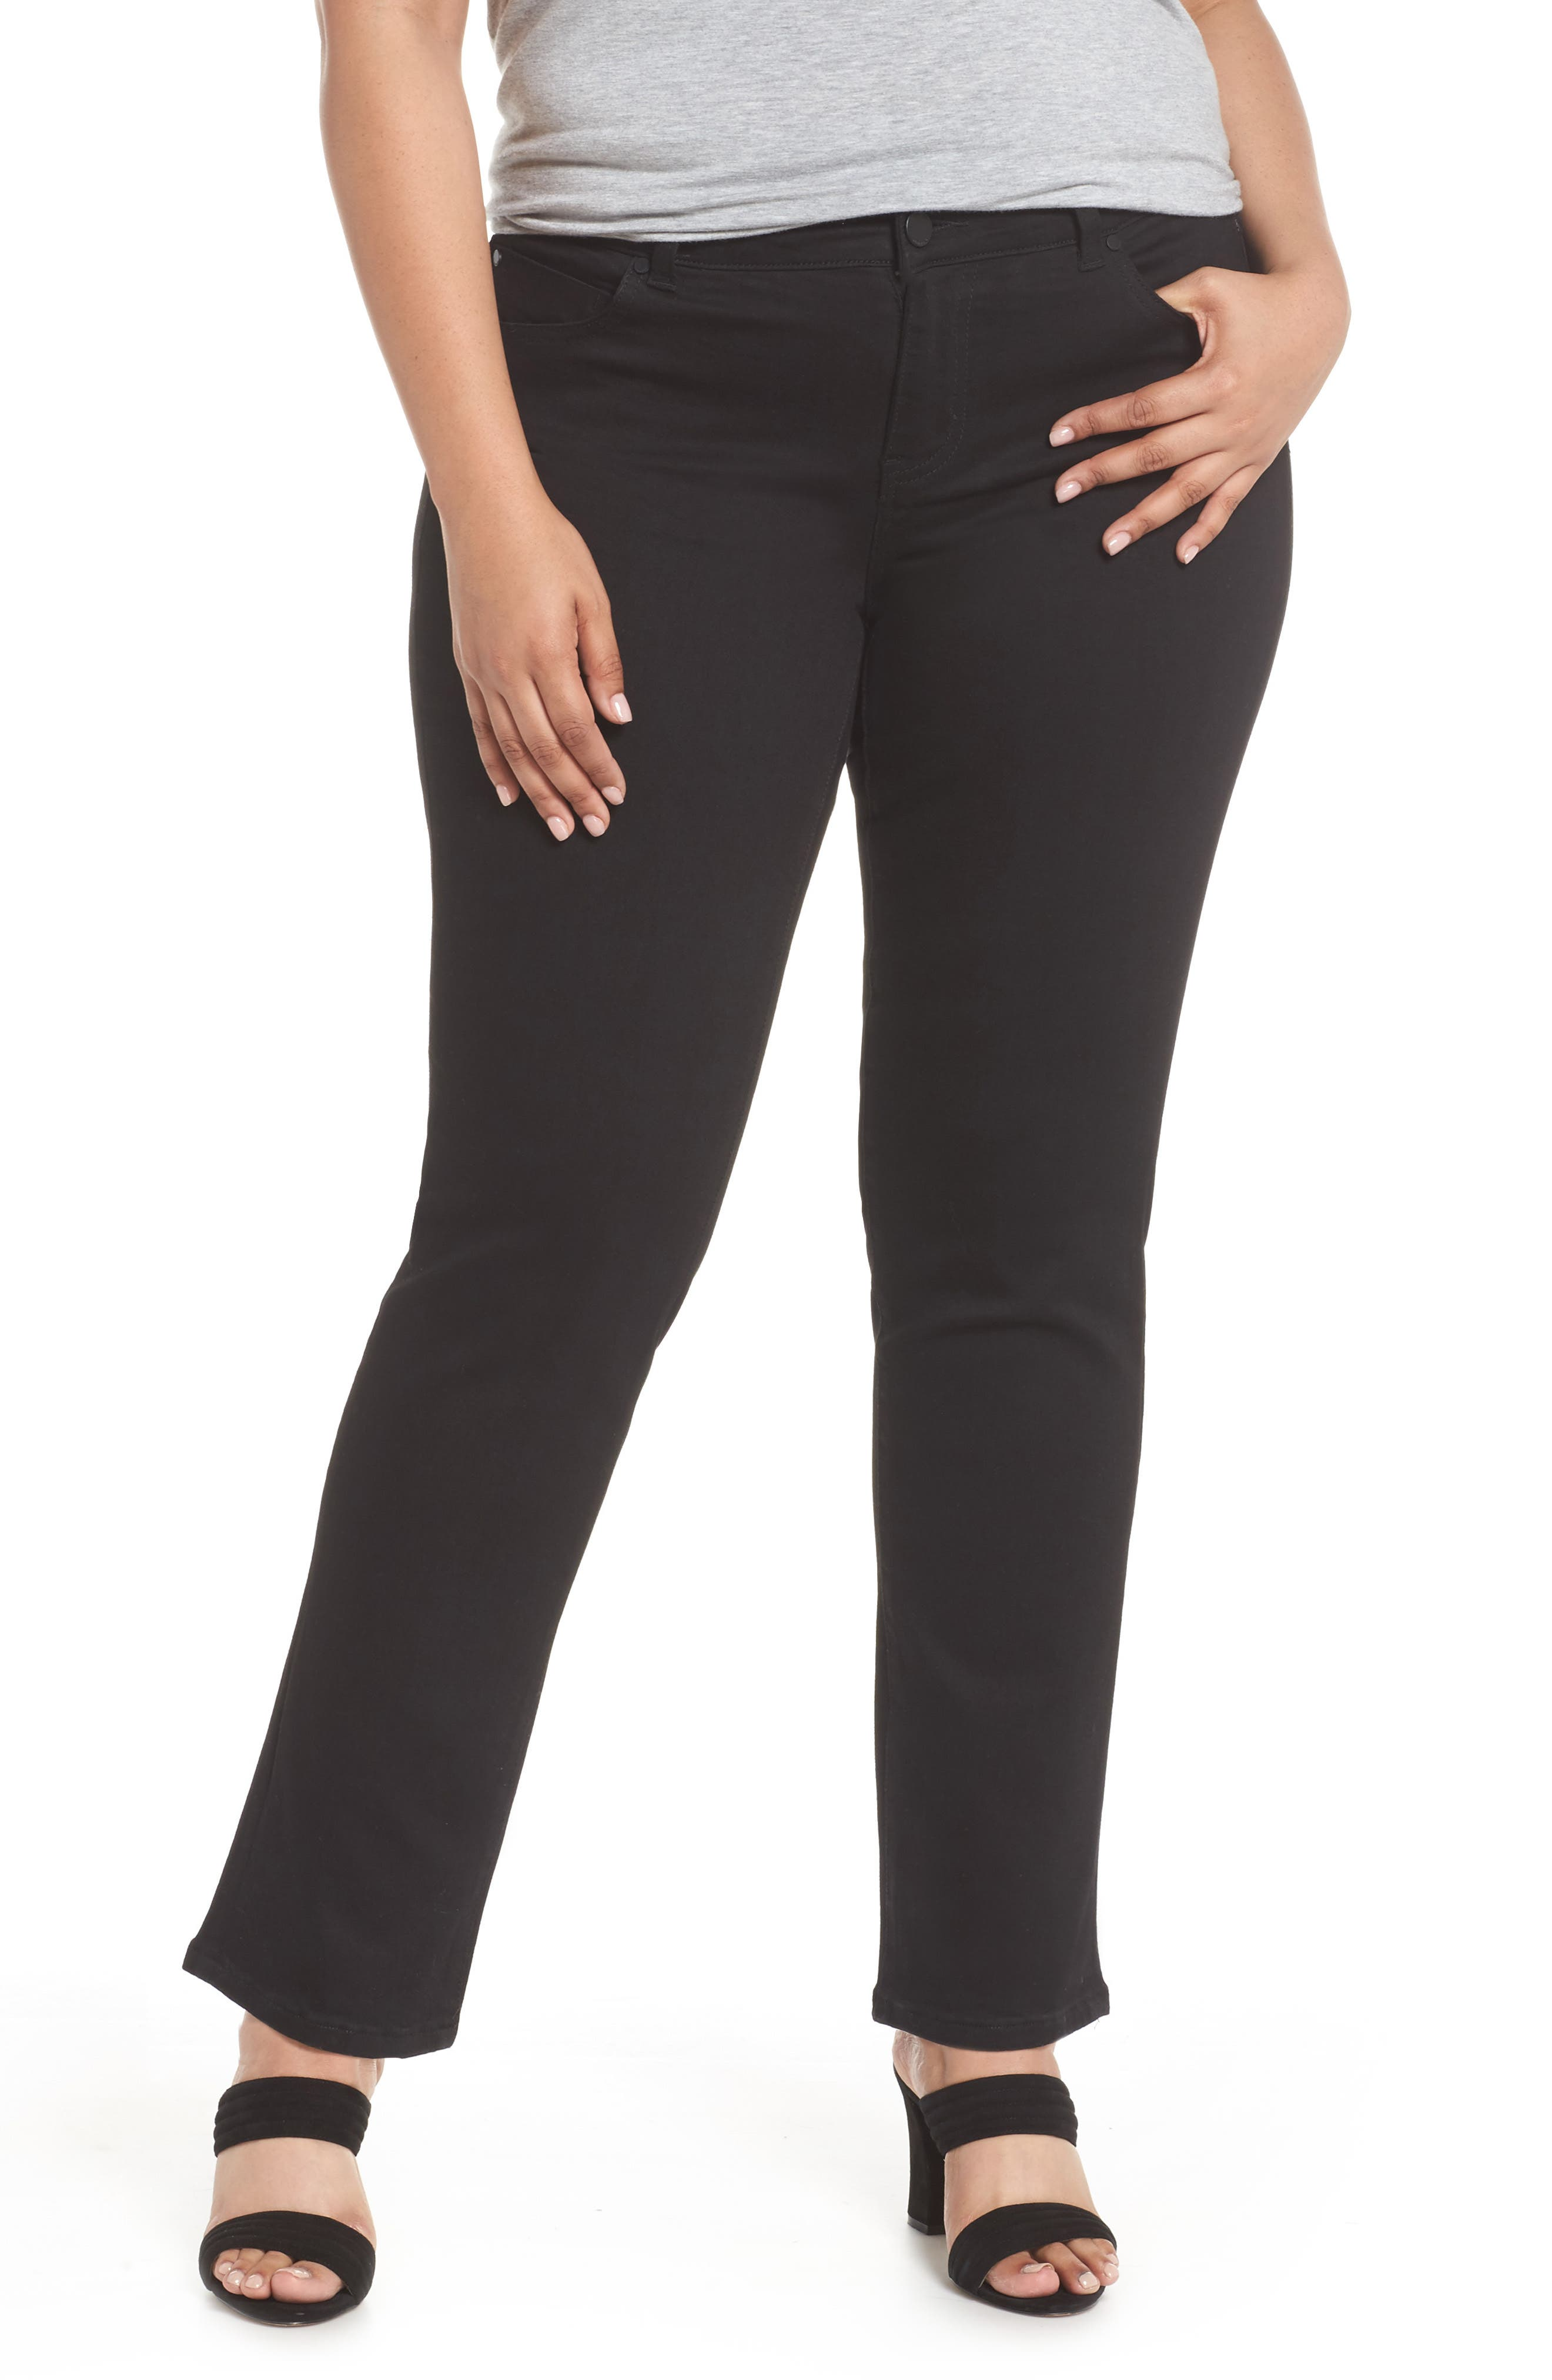 Sadie Stretch Straight Jeans,                         Main,                         color, Black Rinse